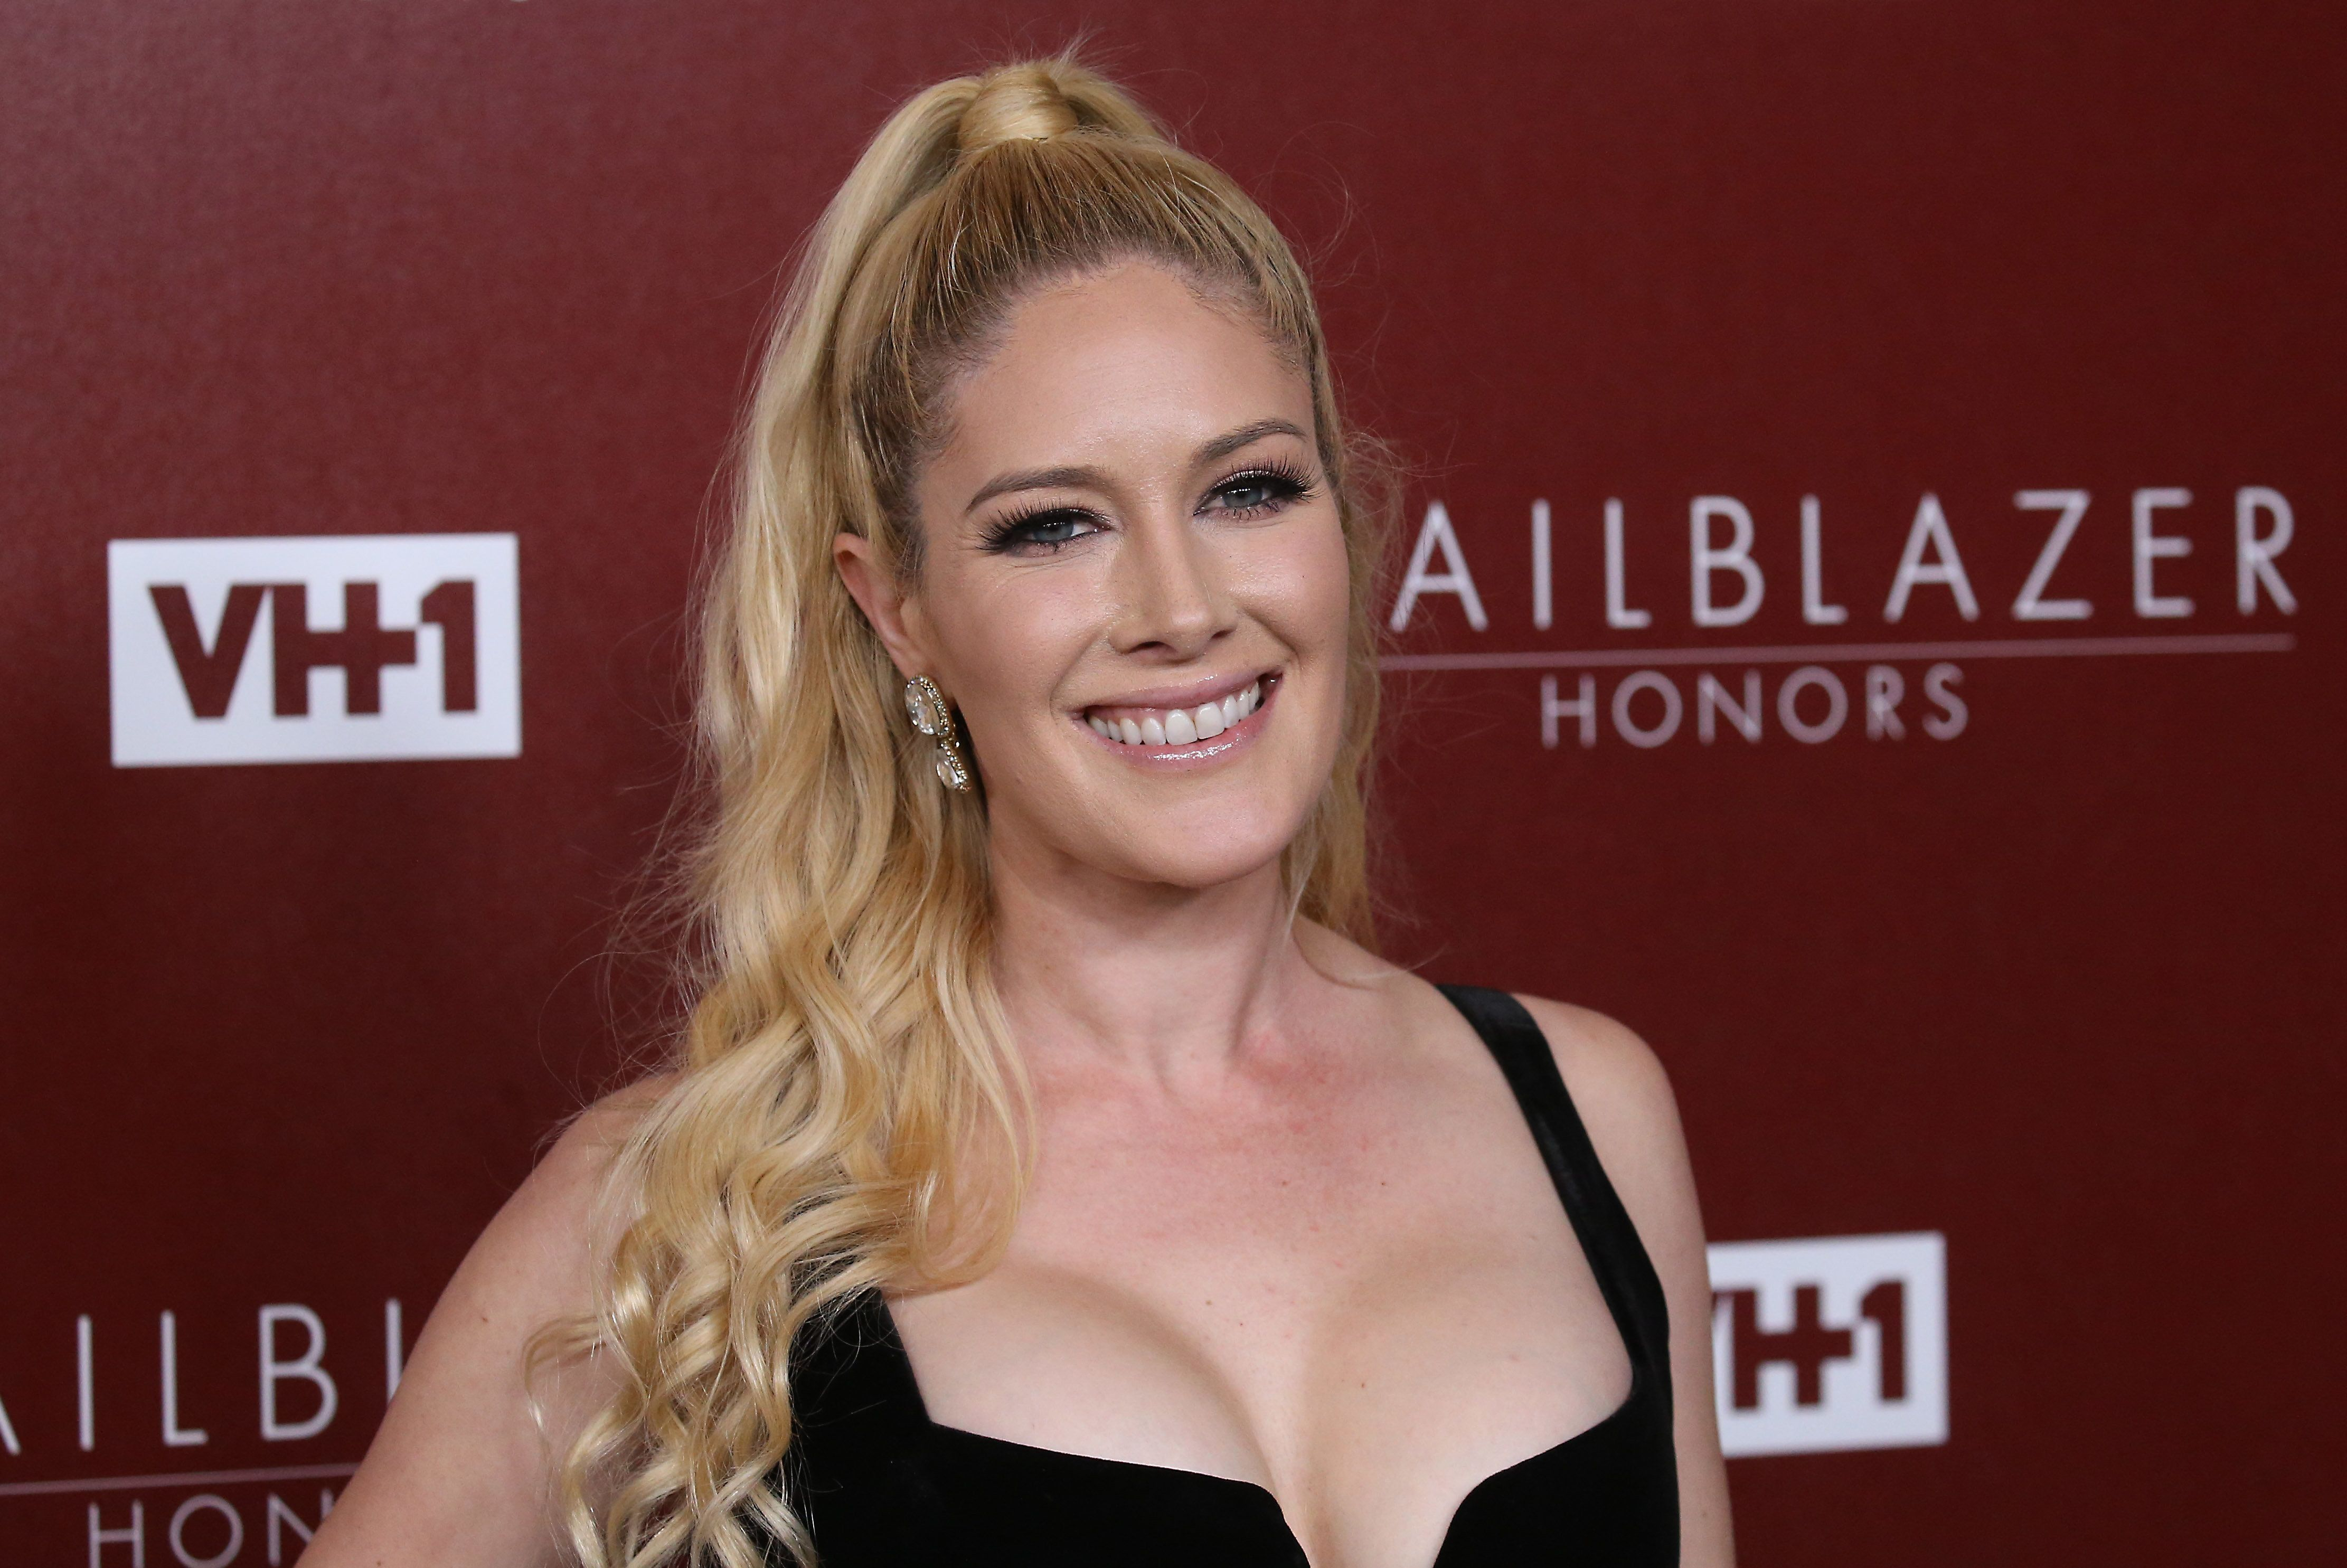 LOS ANGELES, CALIFORNIA - FEBRUARY 20: Heidi Montag attends the VH1 Trailblazer Honors held at The Wilshire Ebell Theatre on February 20, 2019 in Los Angeles, California. (Photo by Michael Tran/FilmMagic)